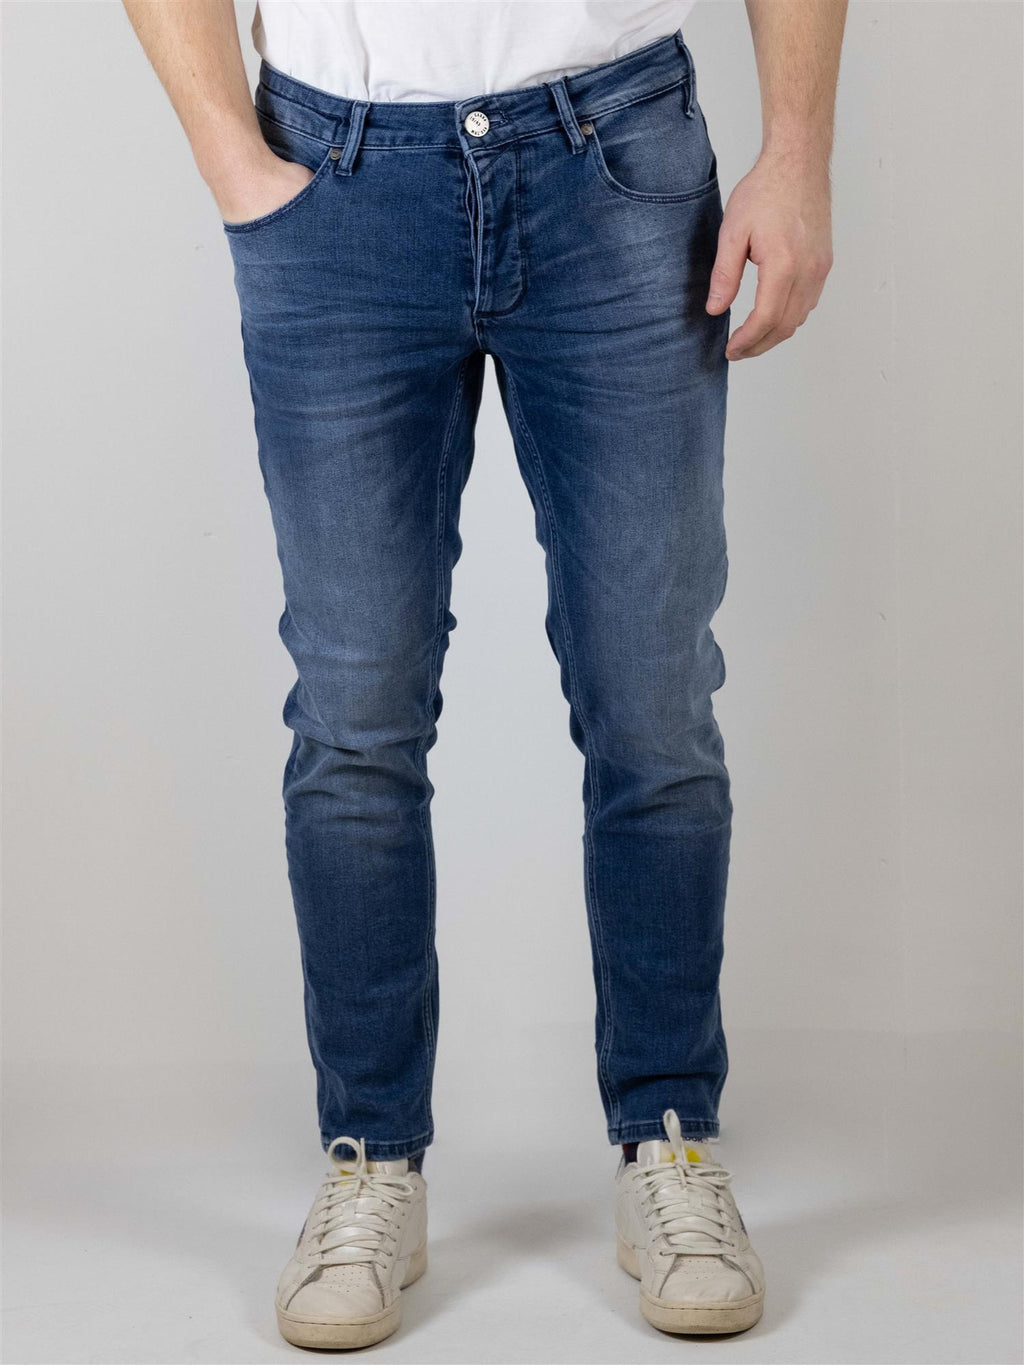 Rey Flex Jeans Slim Tapered K3866 - Medium Blue Denim